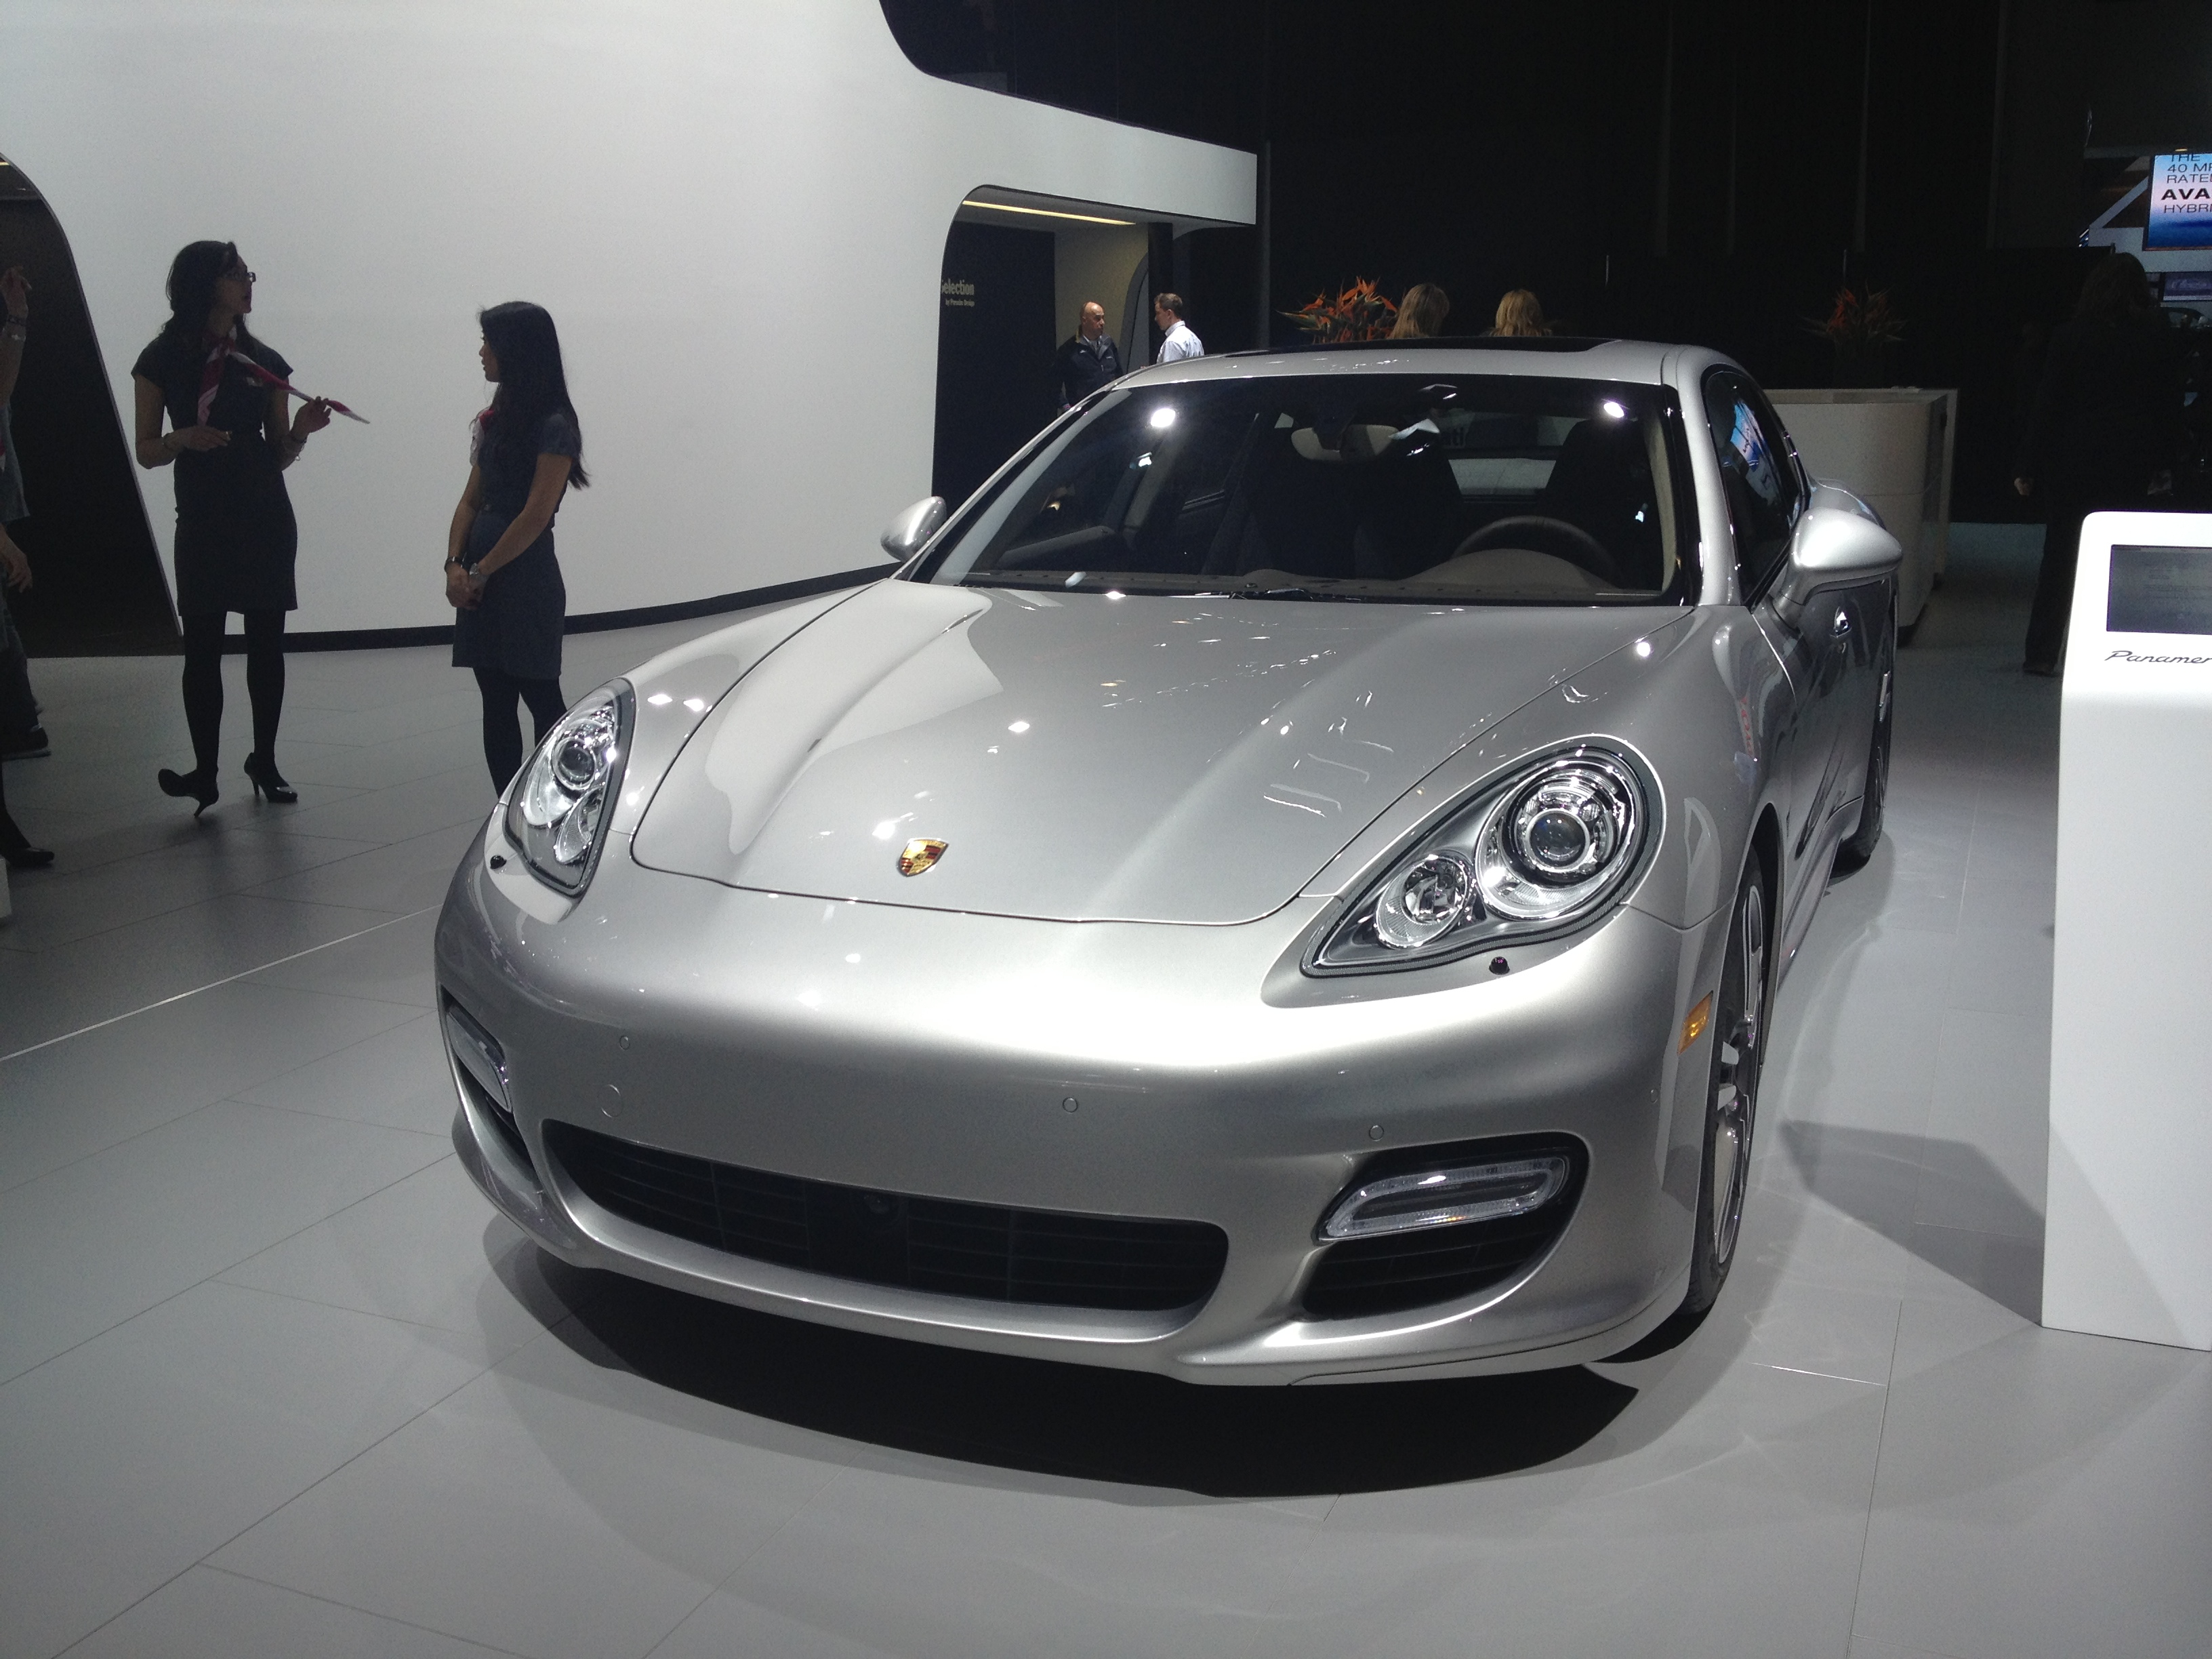 2013-porsche-panamera-turbo-s-at-naias-2013-by-sarahlarson